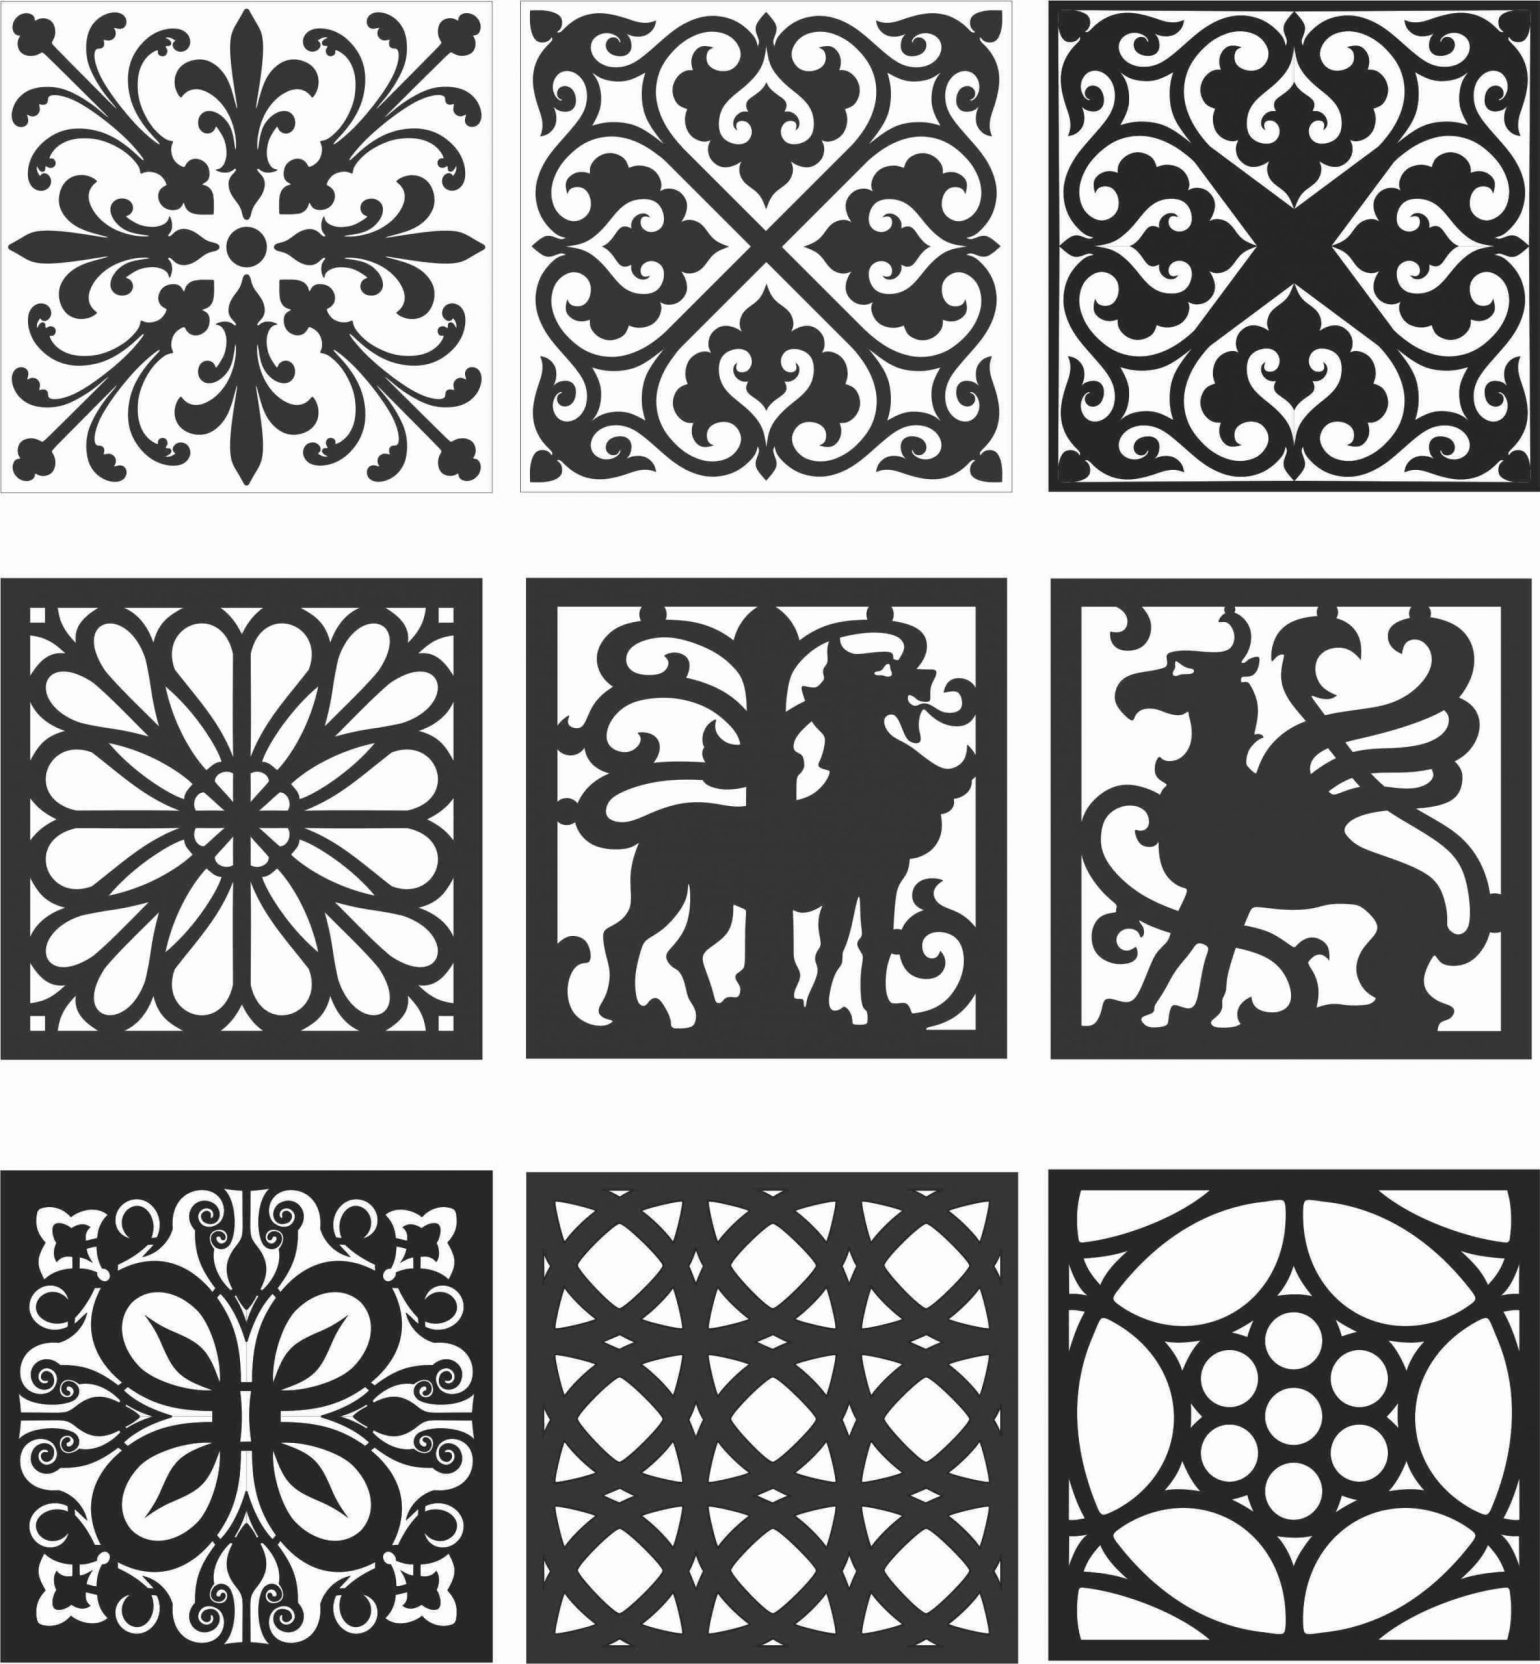 Floral Screen Patterns Design 128 Free DXF File